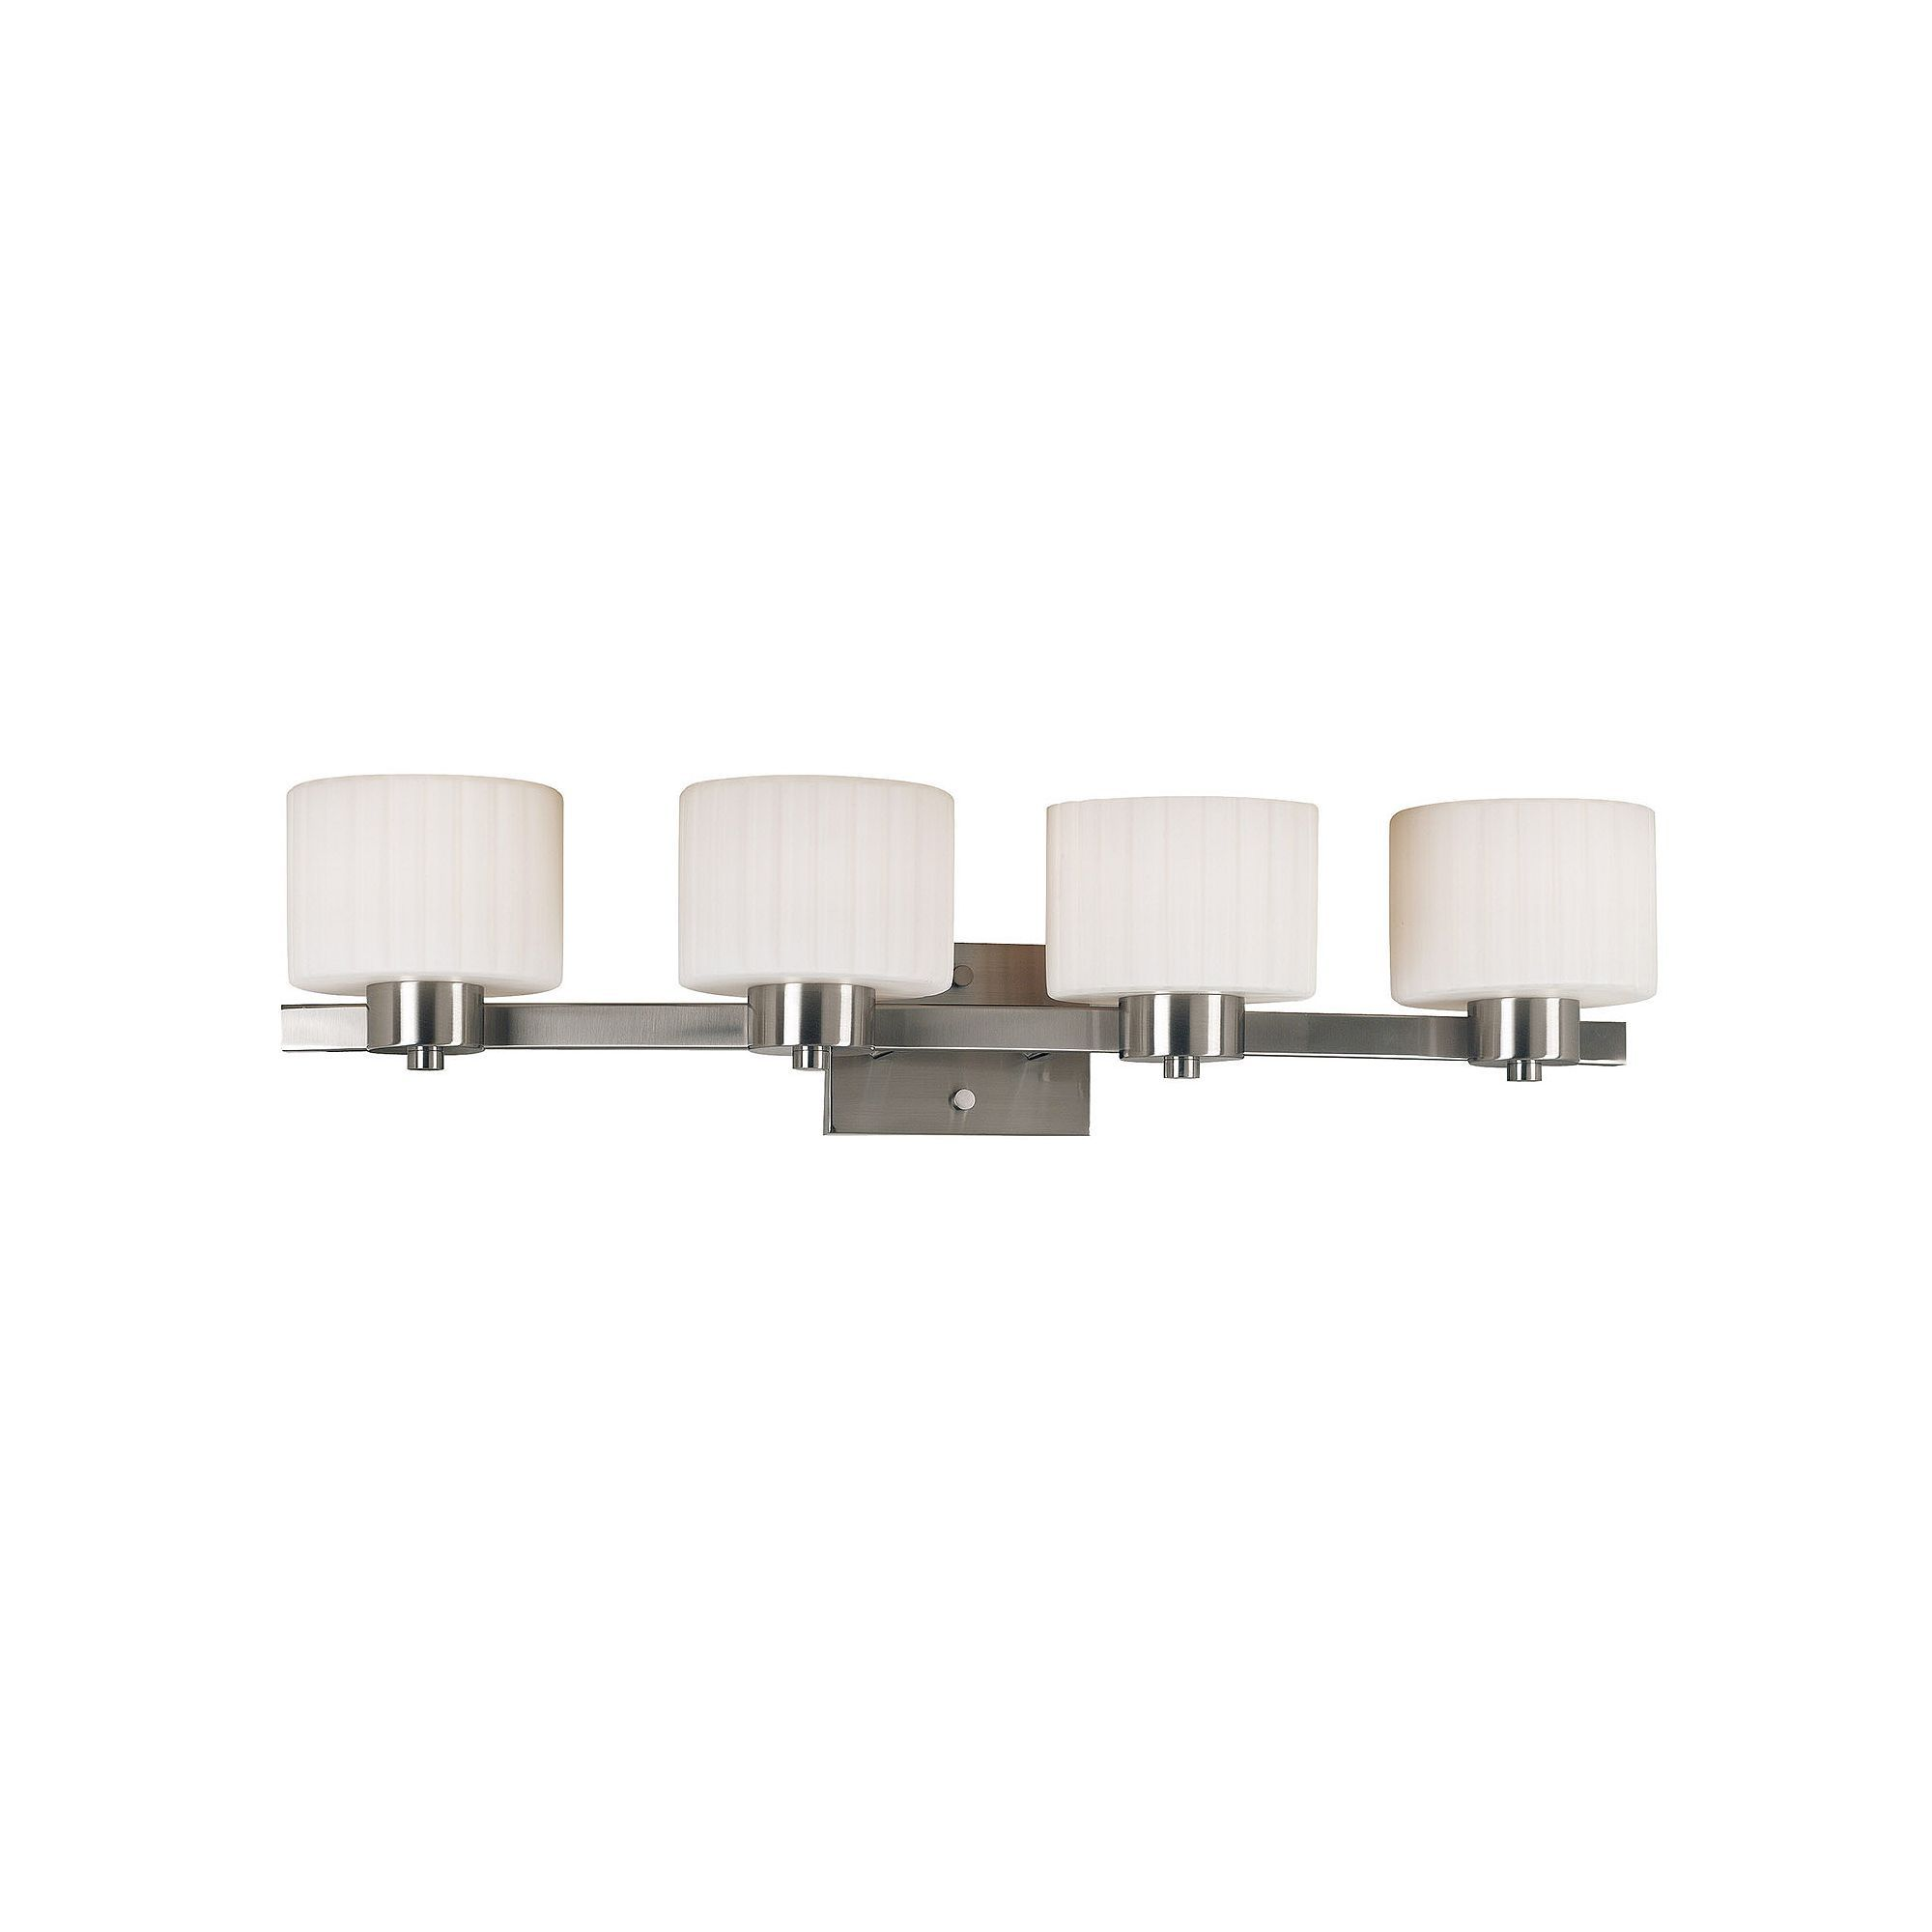 Kenroy home legacy light vanity wall sconce wall sconces